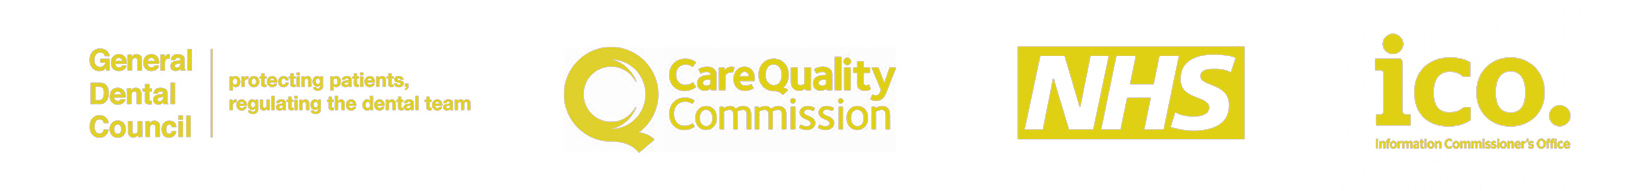 Fully compliant websites